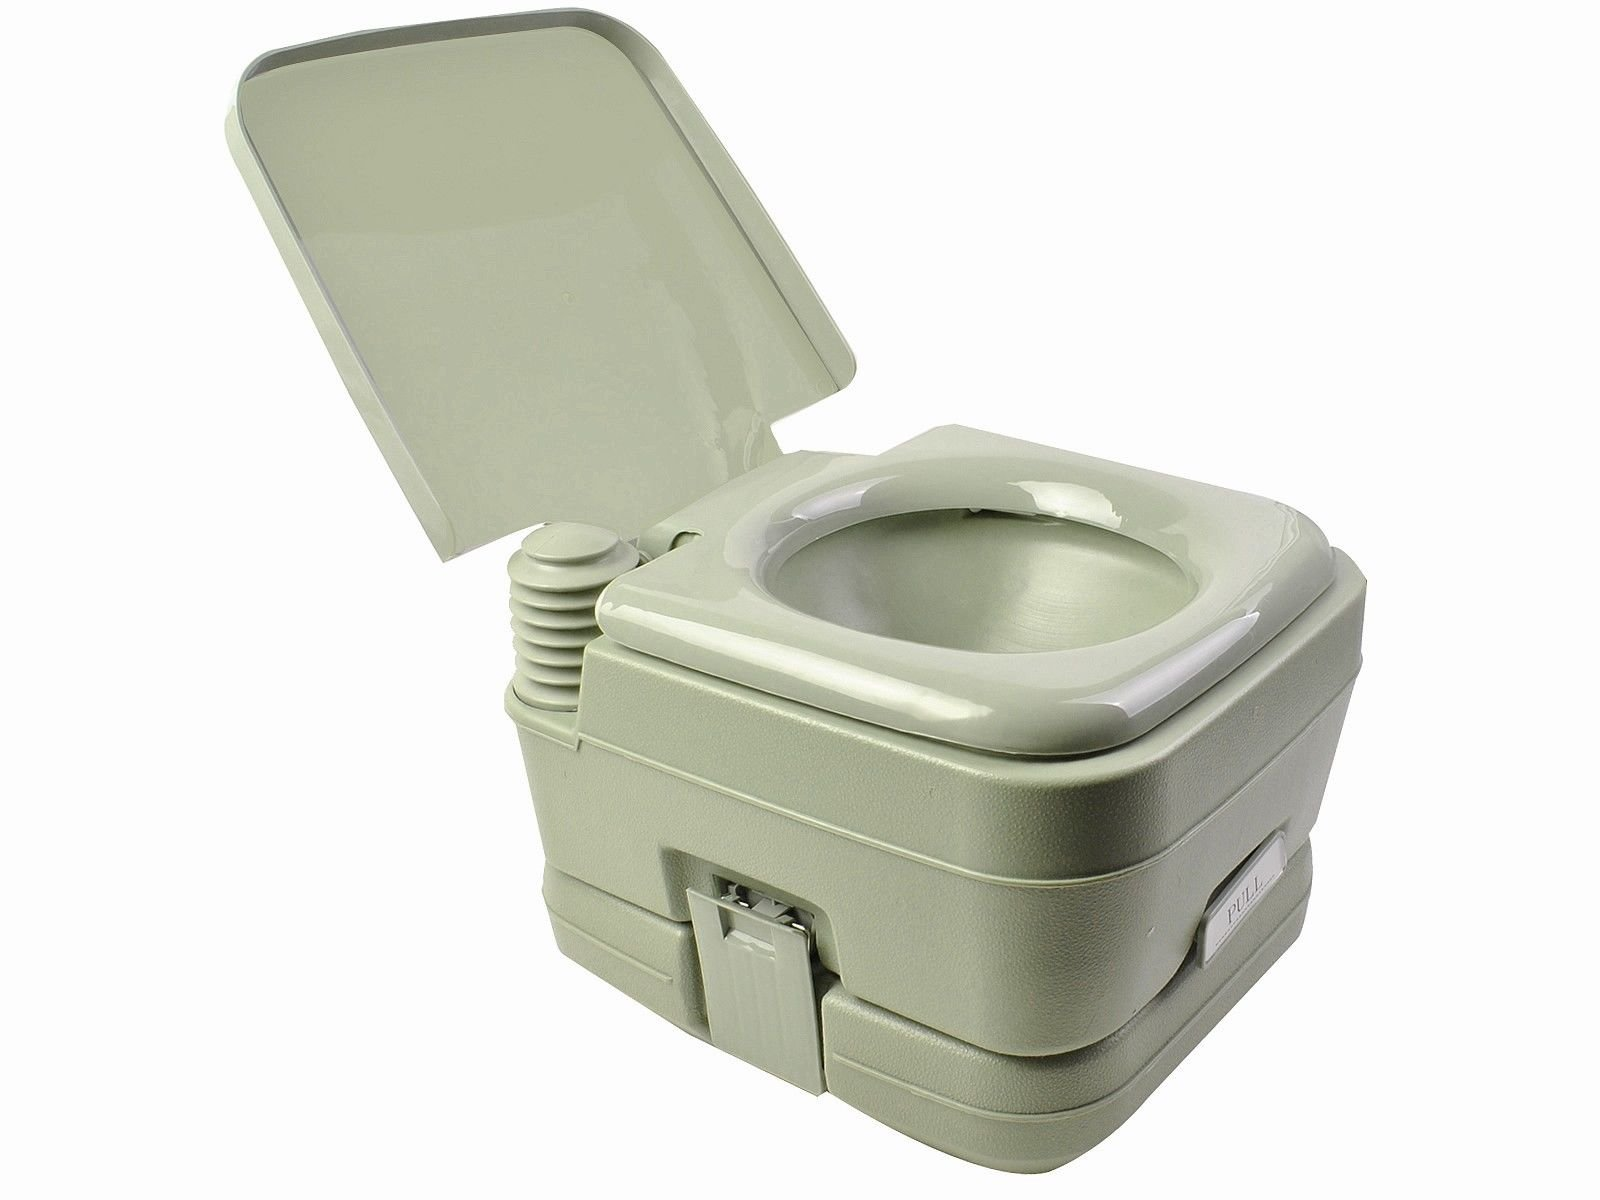 JDM Auto Lights 2.8 Gallon Portable Toilet Flush Travel Outdoor Camping Hiking Toilet Potty 10l by JDM Auto Lights (Image #1)